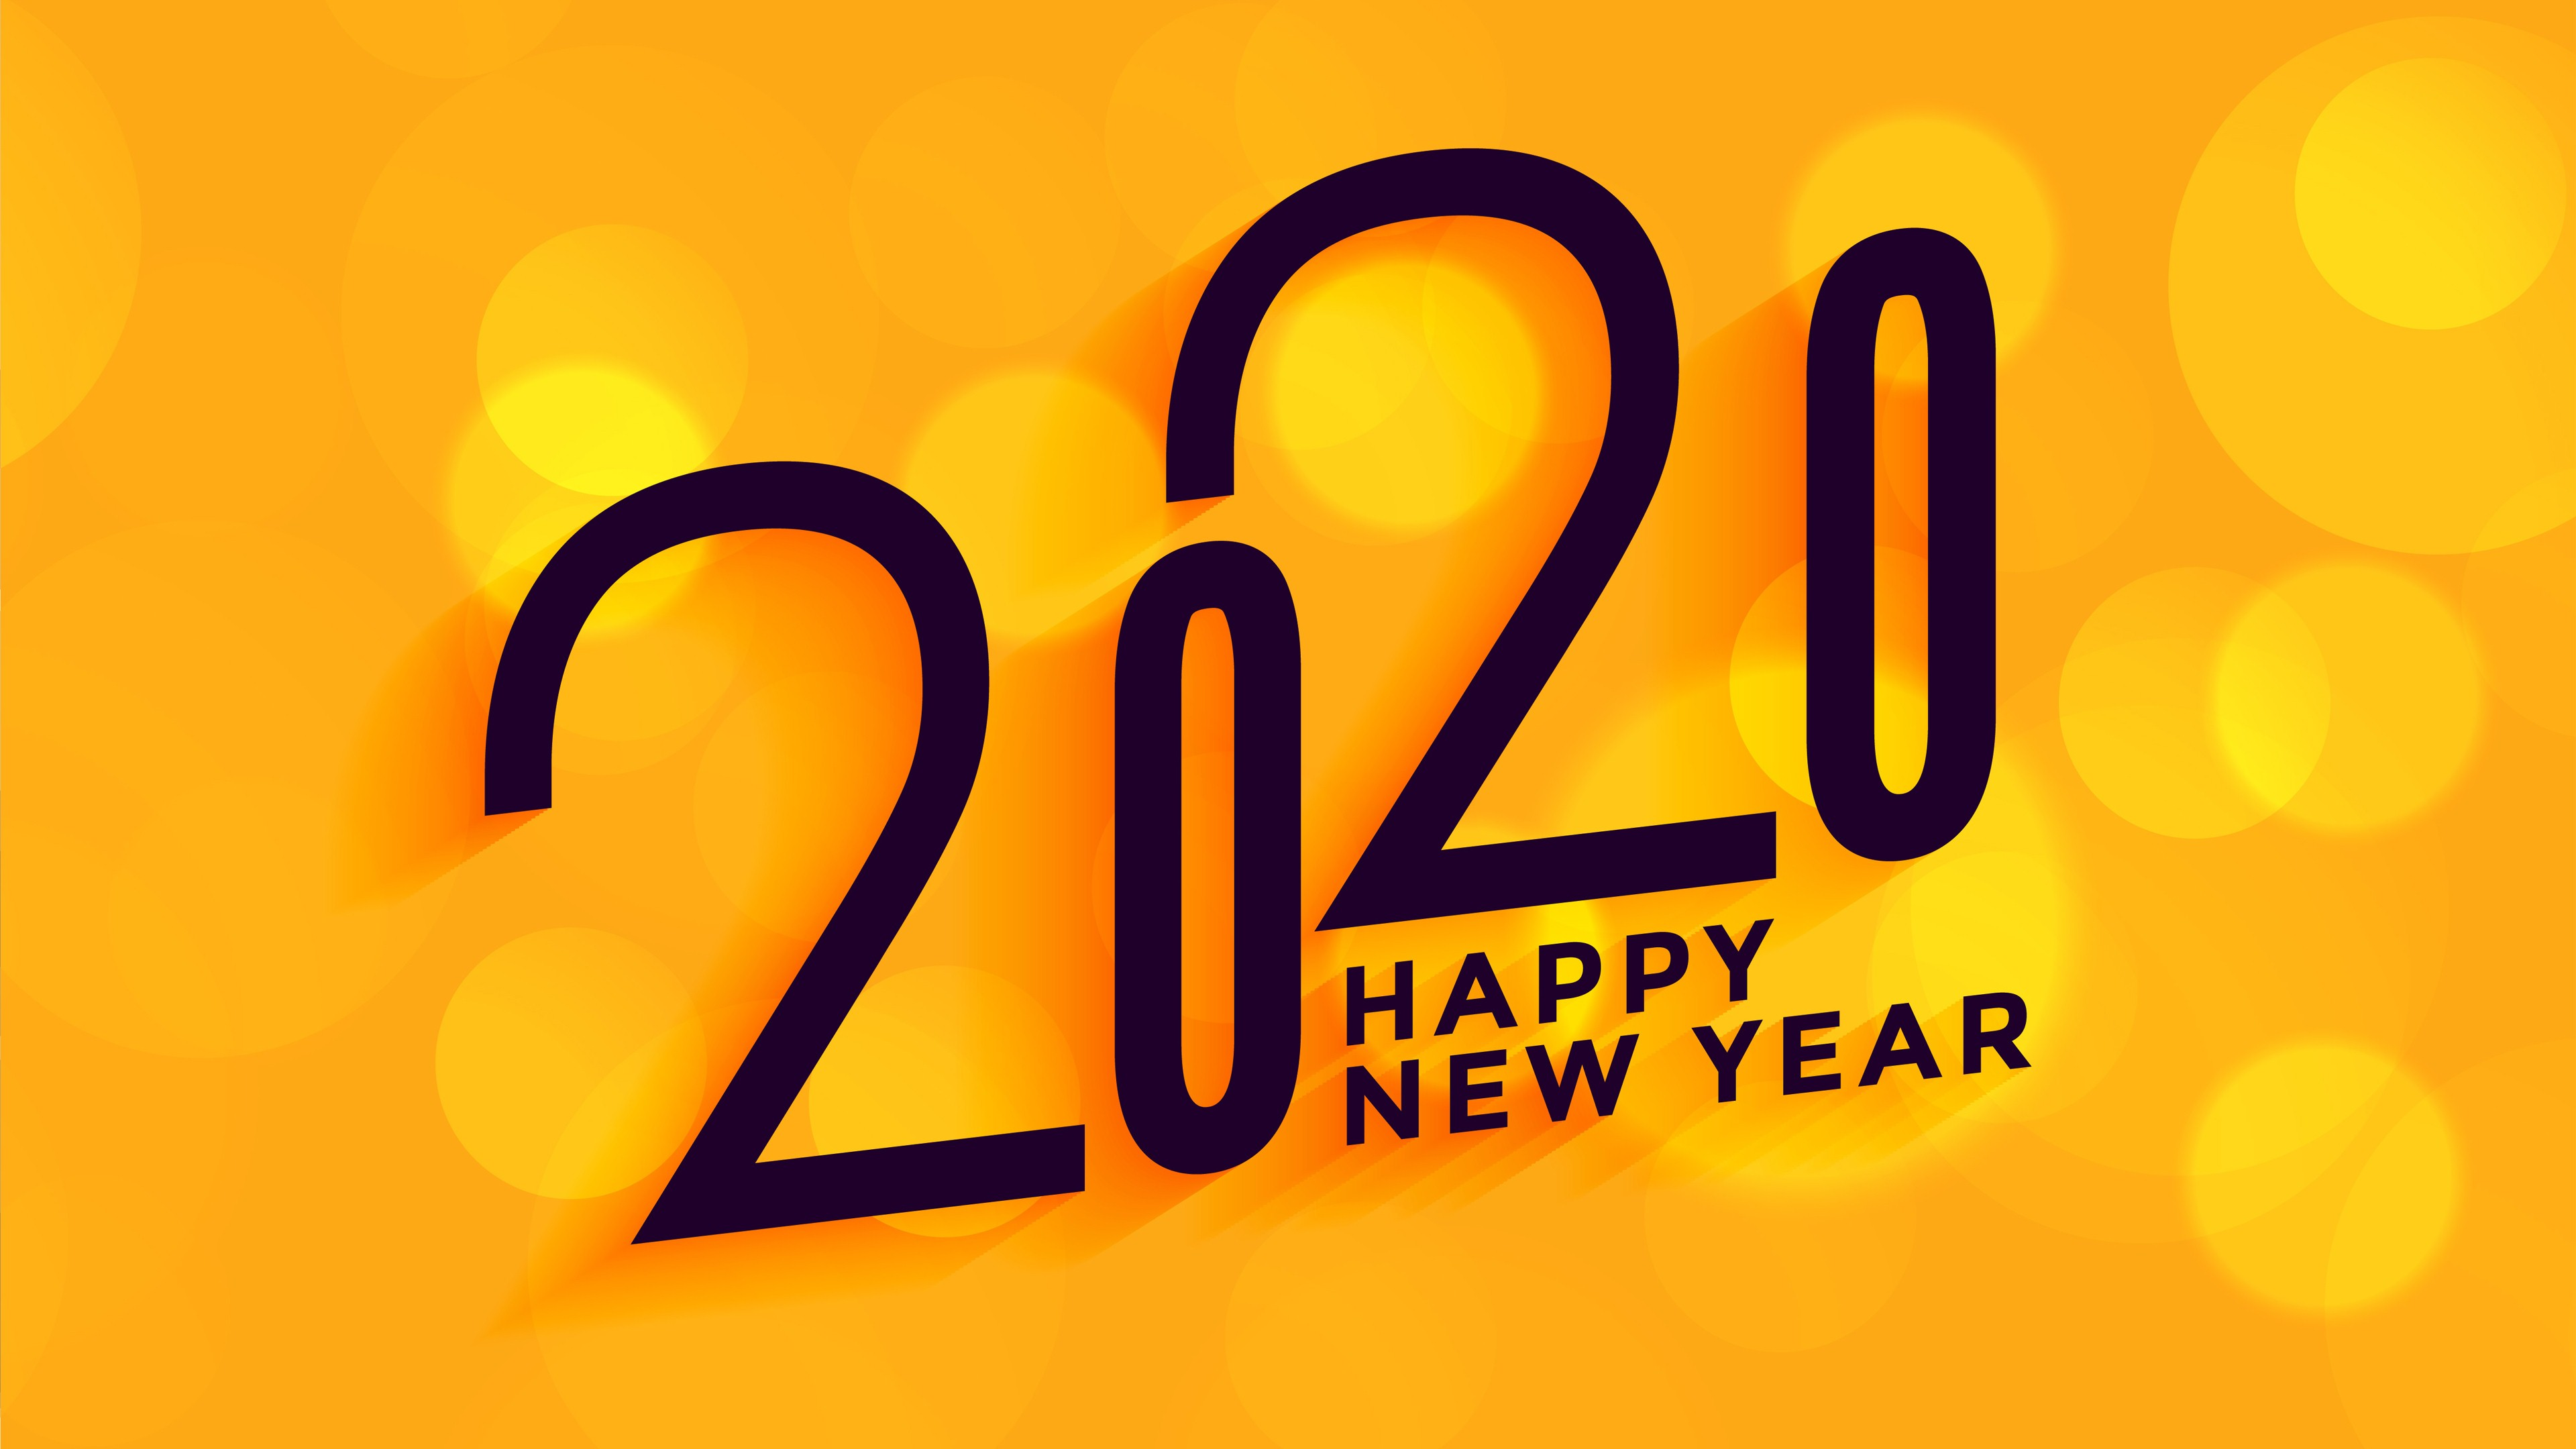 download download 2020 Happy New Year Yellow 4K Wallpaper HD 3840x2160